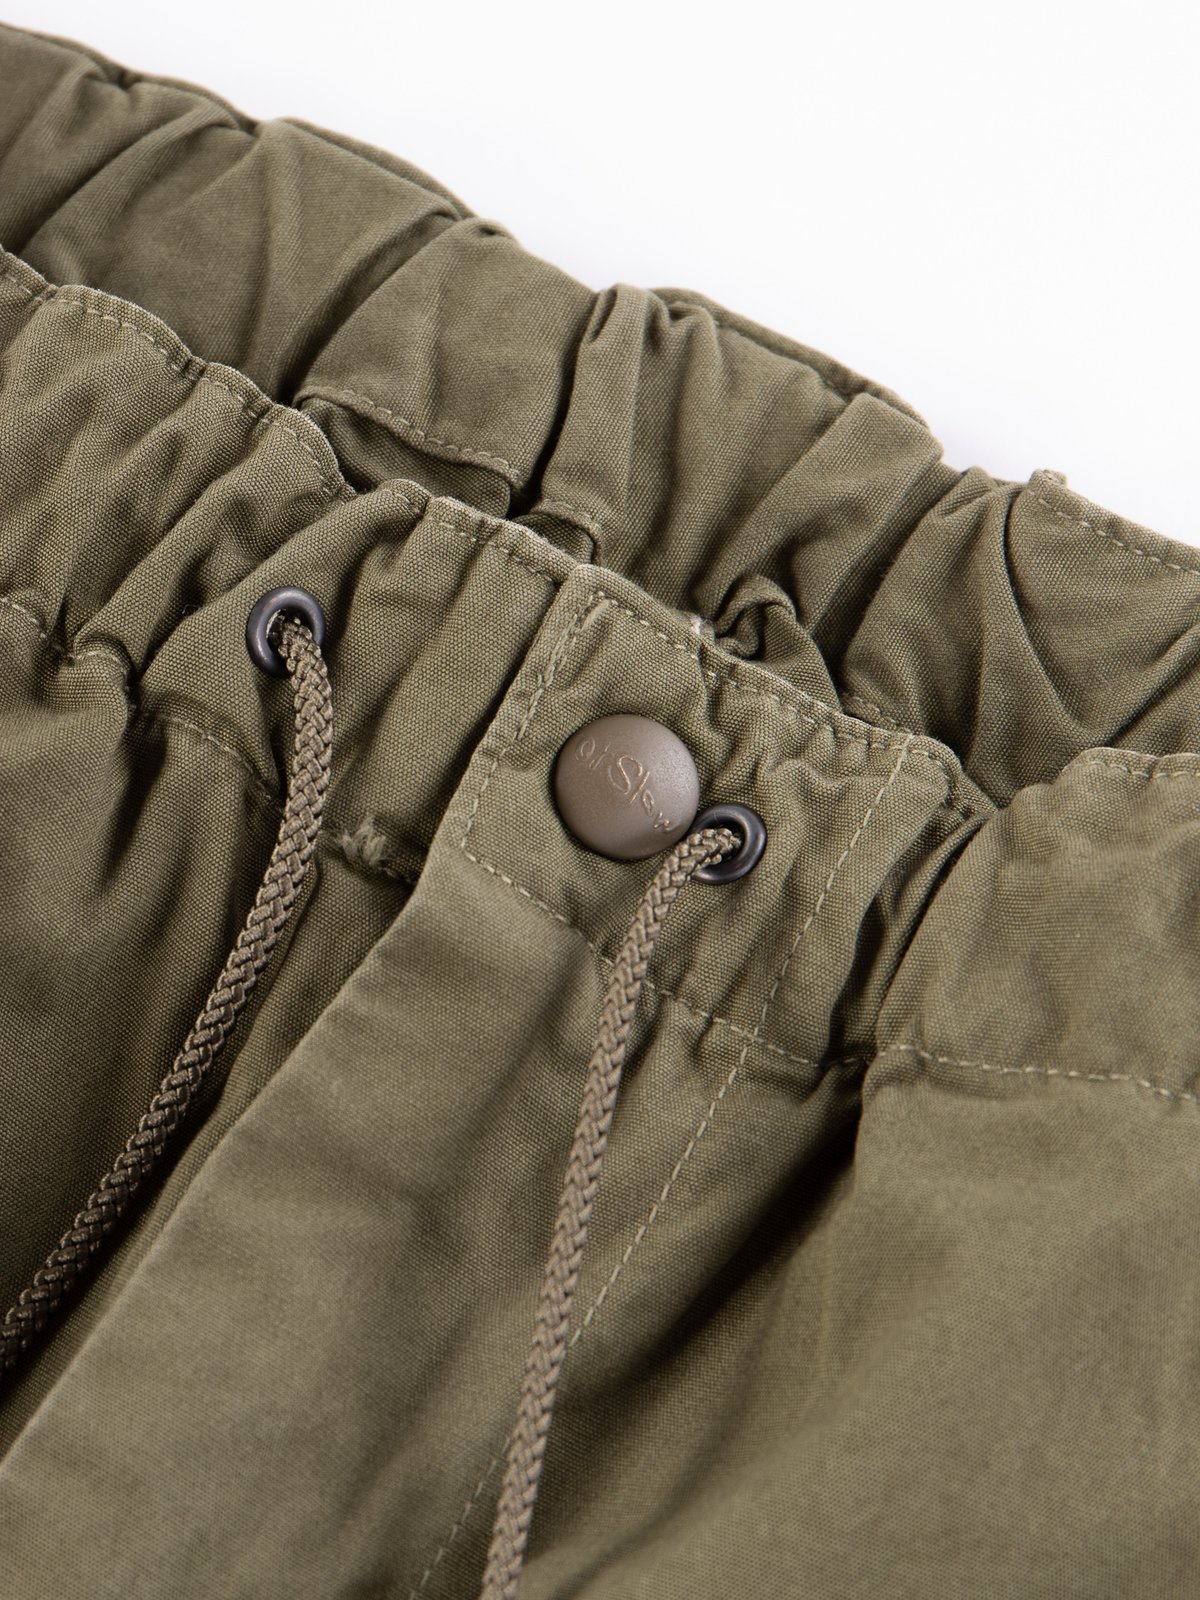 Army Weather Cloth Easy Cargo Pant - Image 6